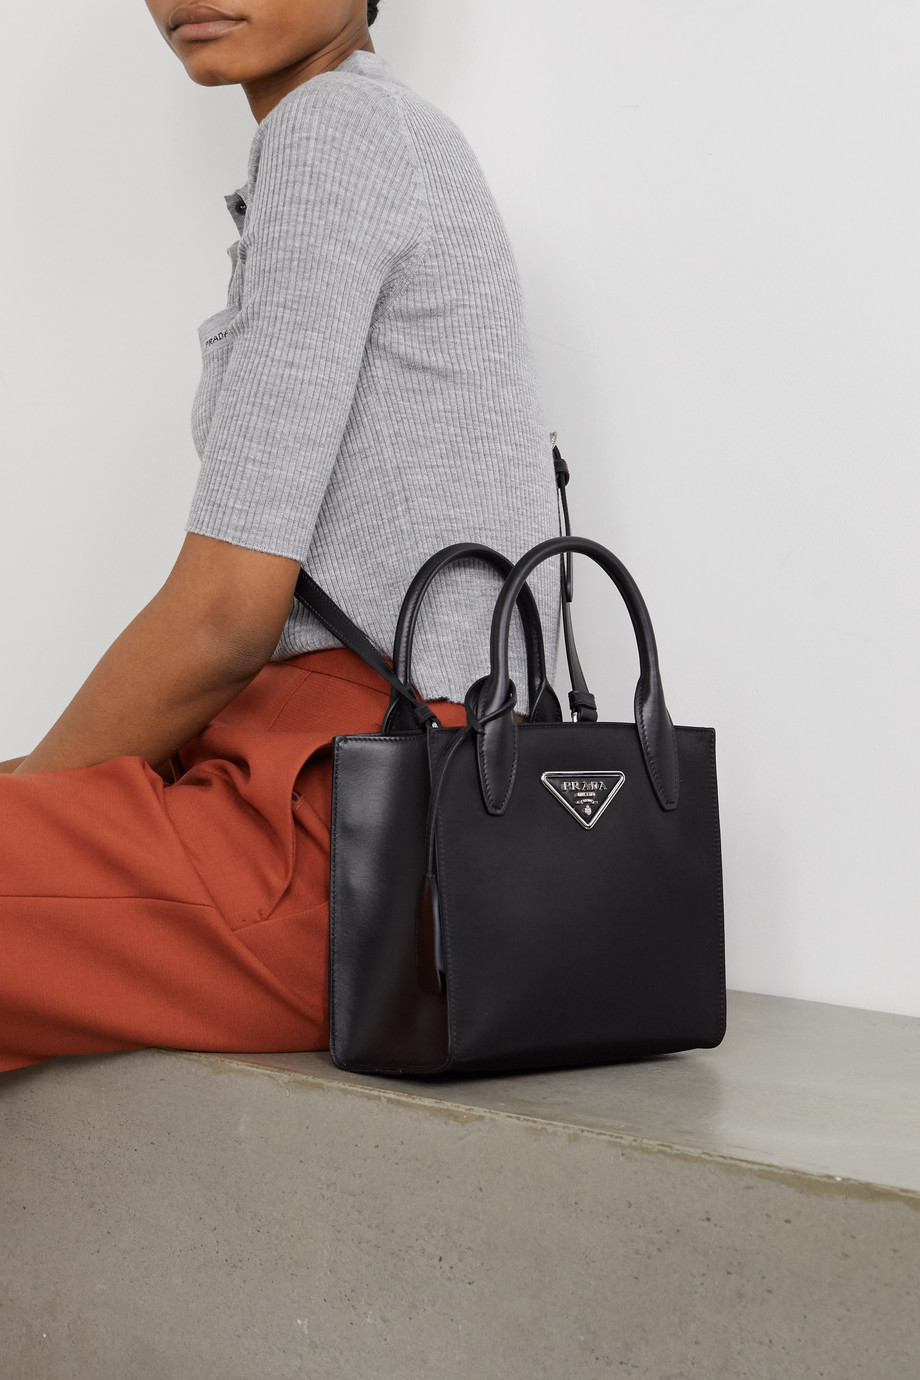 Prada Tessuto Vitalo leather-trimmed nylon tote